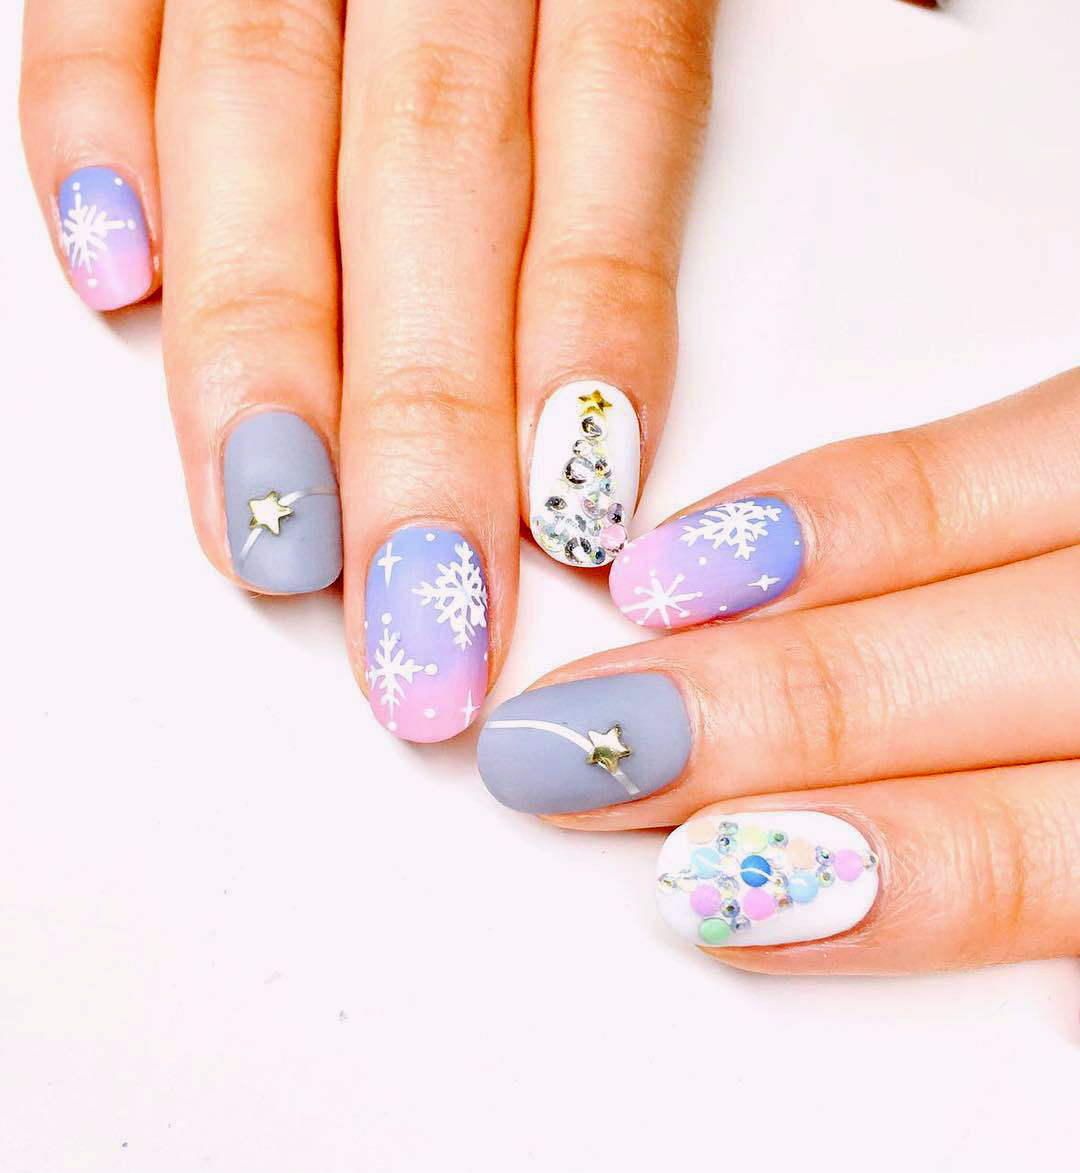 Fashion Nail Beauty Spa Elizabeth Nj: 10 Best Nail Salons For The Perfect Manicure In JB